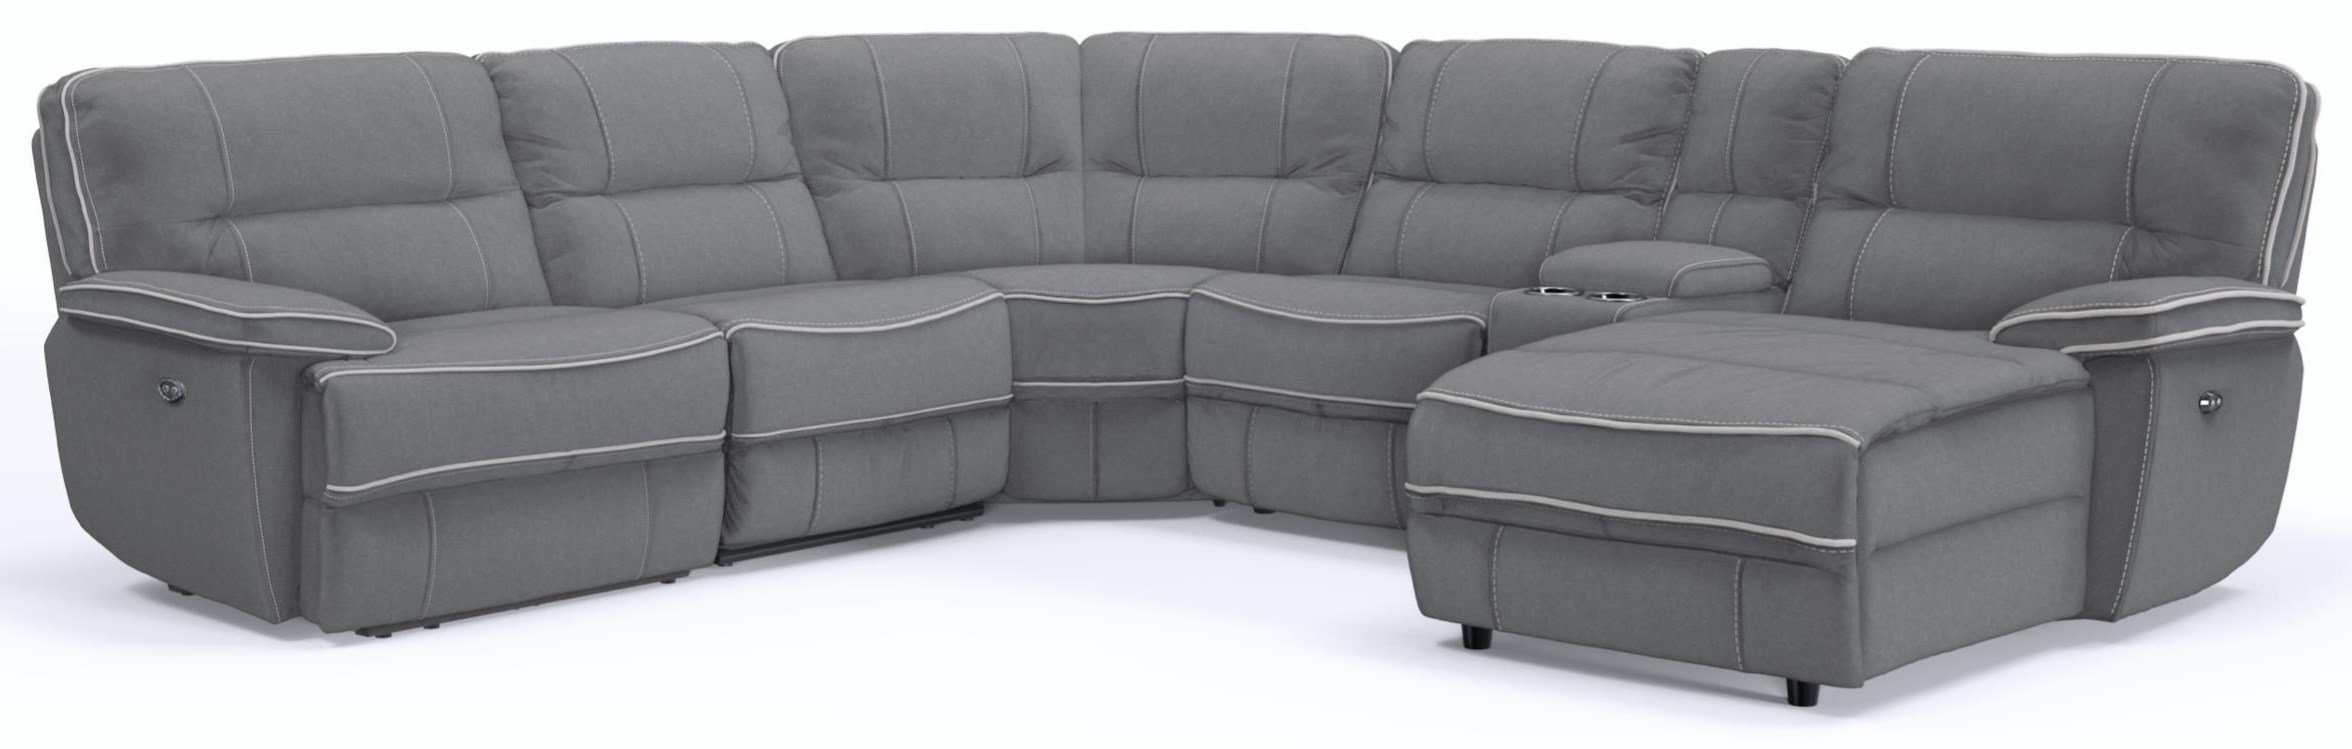 KM019 6 Pc Pwr Reclining Sectional Sofa by Kuka Home at Beck's Furniture